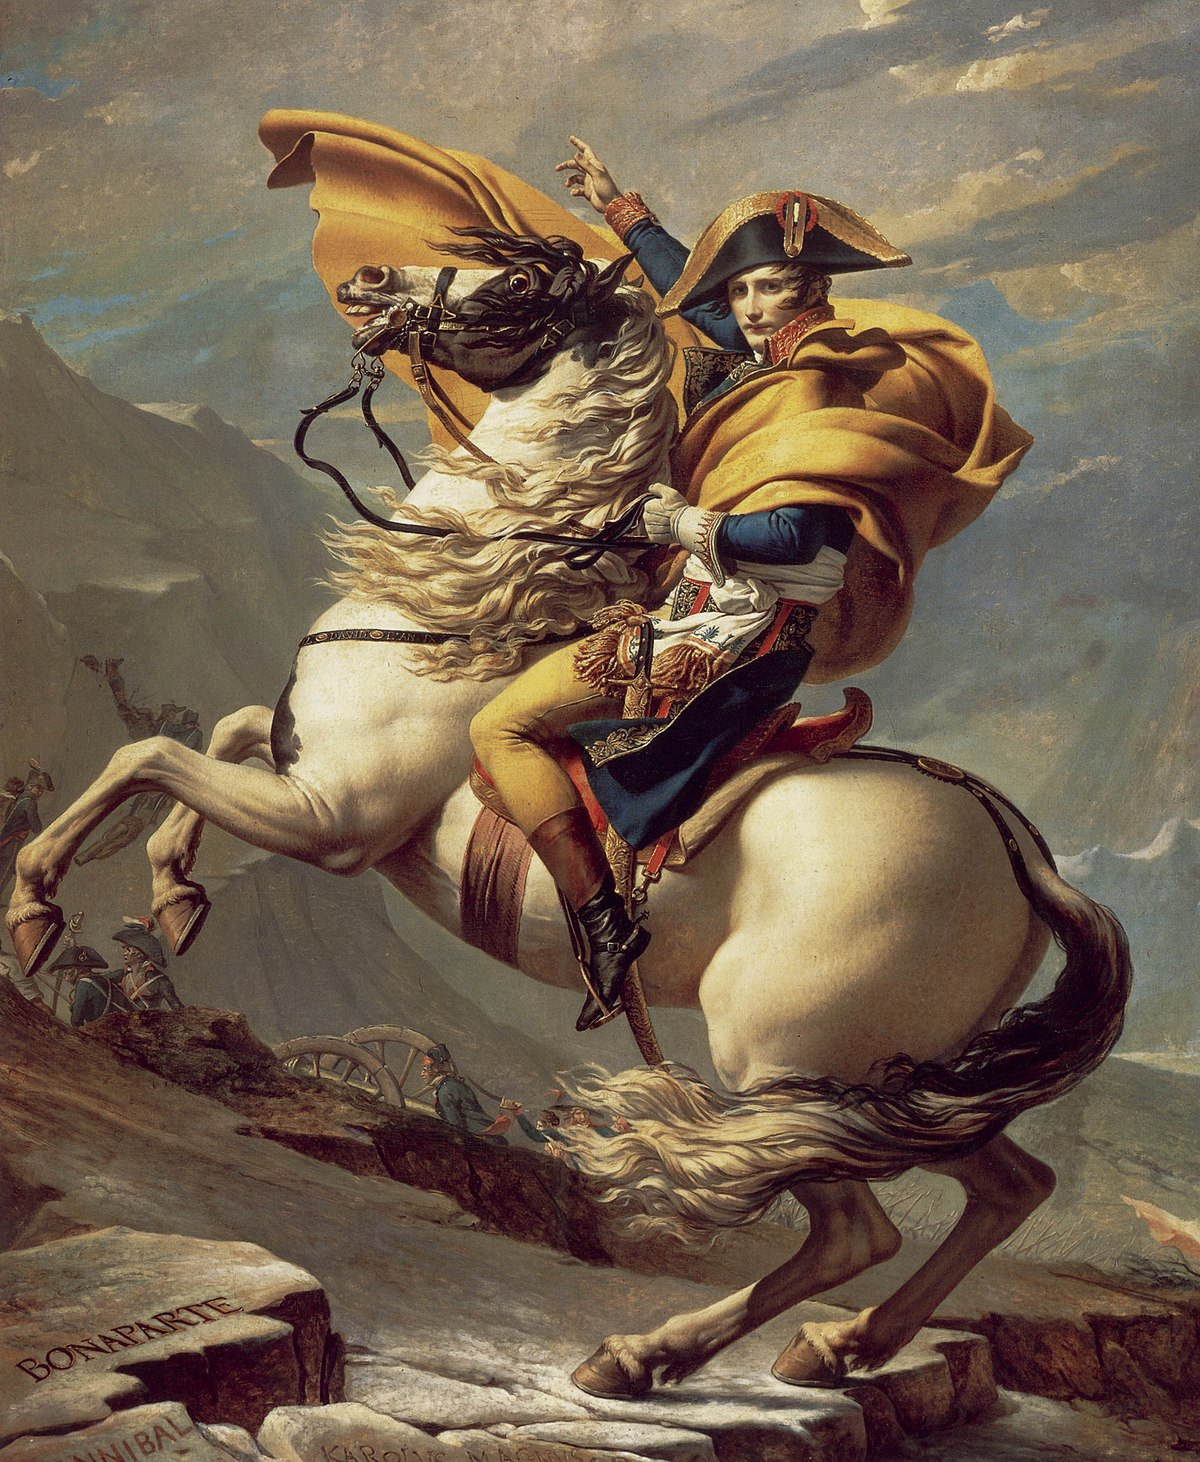 Jacques-Louis David, Napleon Bonaparte